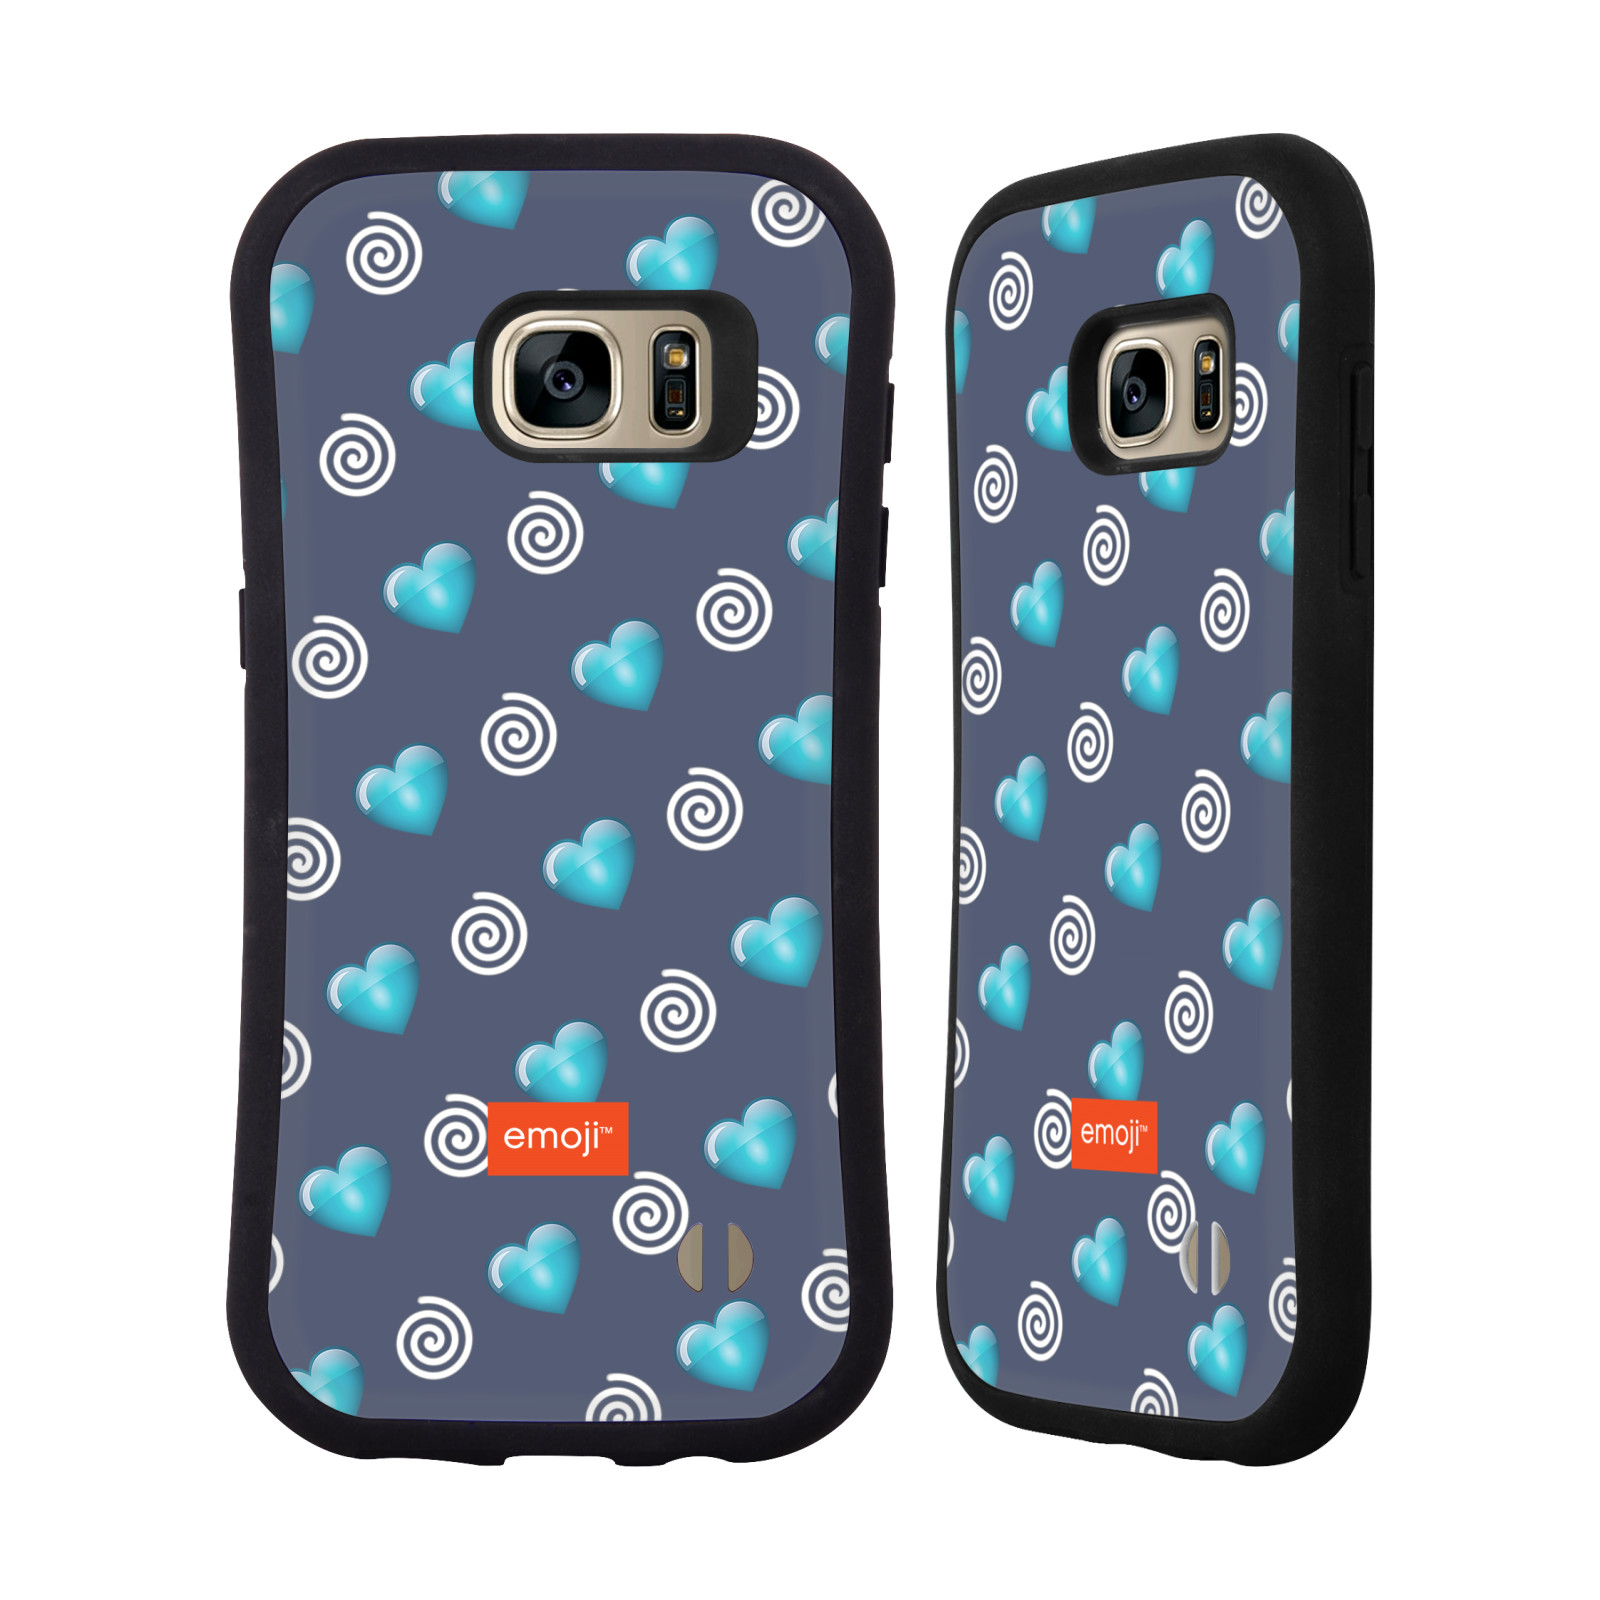 OFFICIAL EMOJI WINTER PATTERNS HYBRID CASE FOR SAMSUNG PHONES